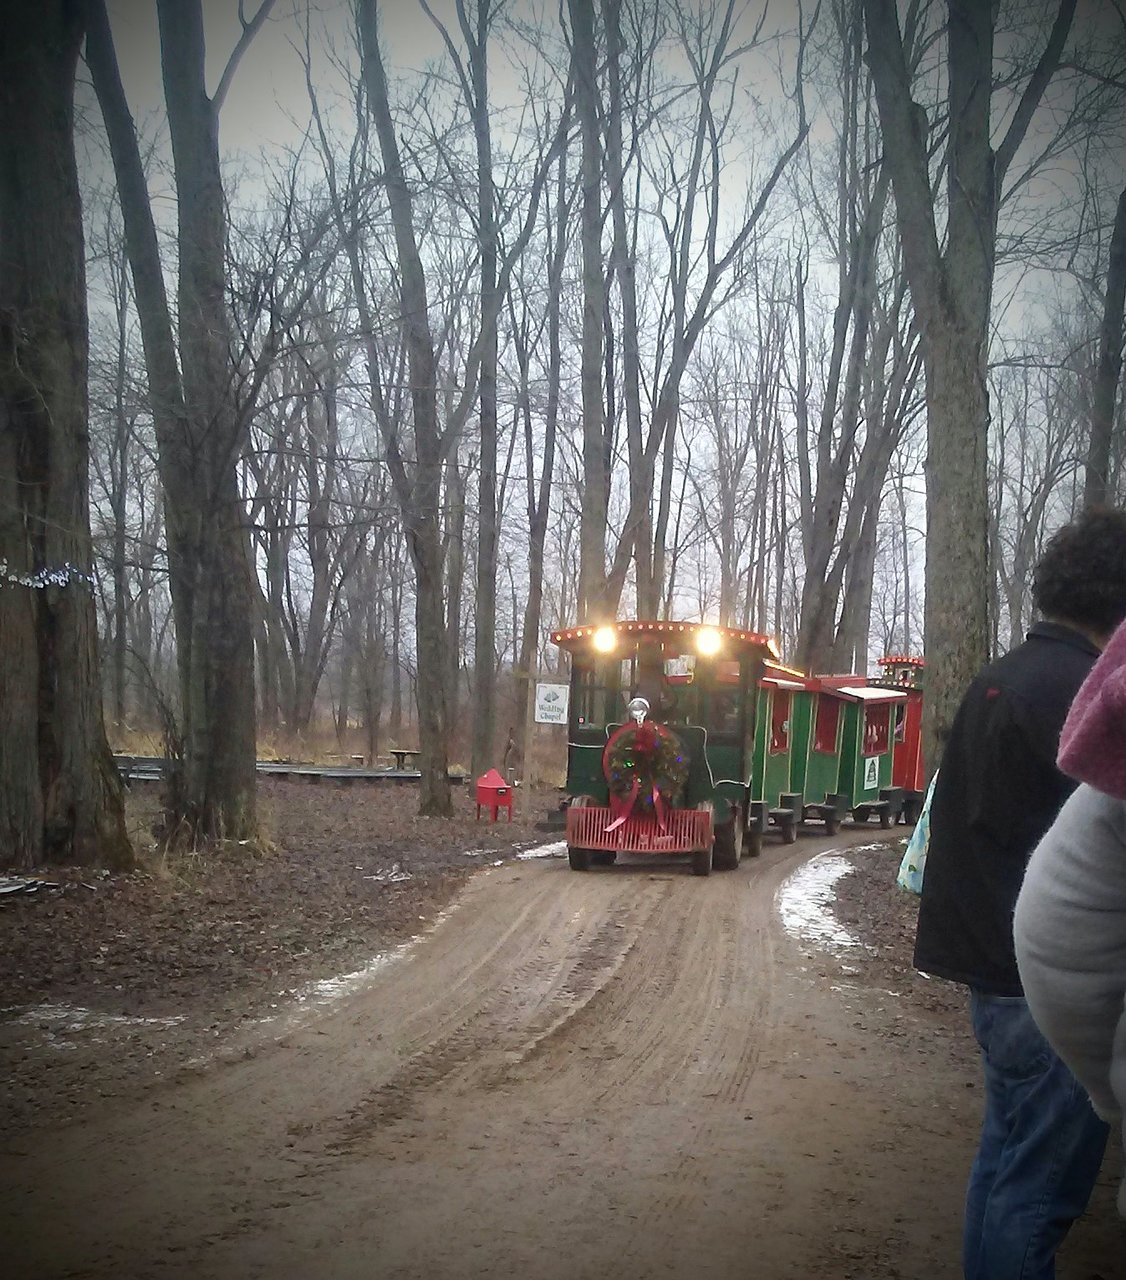 Peacock Road Family Farm Laingsburg All You Need To Know Before You Go Updated 2021 Laingsburg Mi Tripadvisor